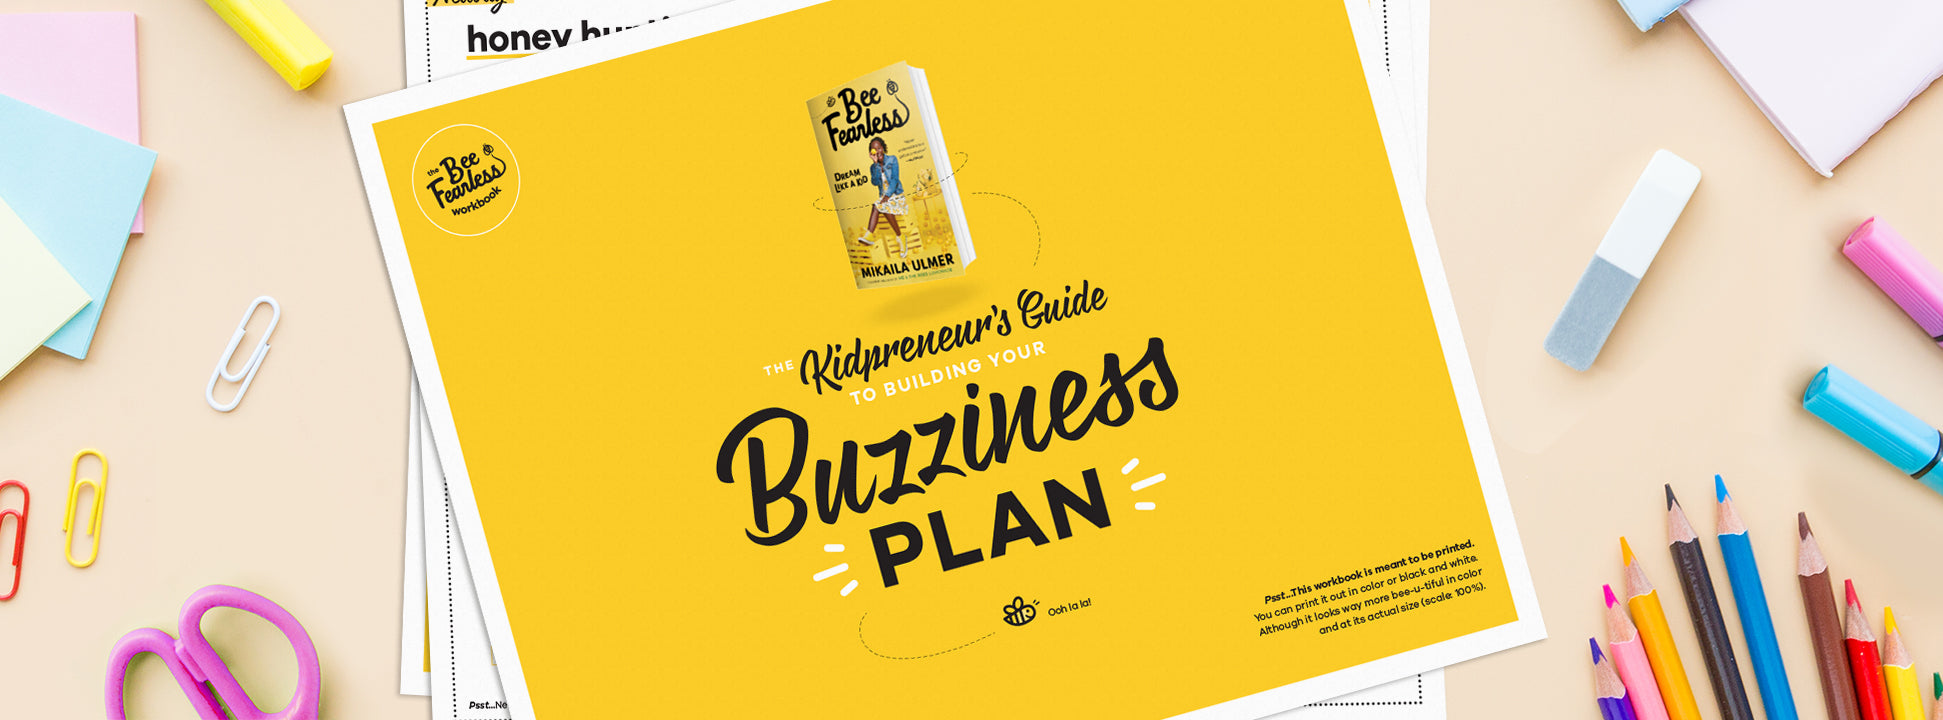 THE KIDPRENUER'S GUIDE TO BUILDING YOUR BUZZINESS PLAN